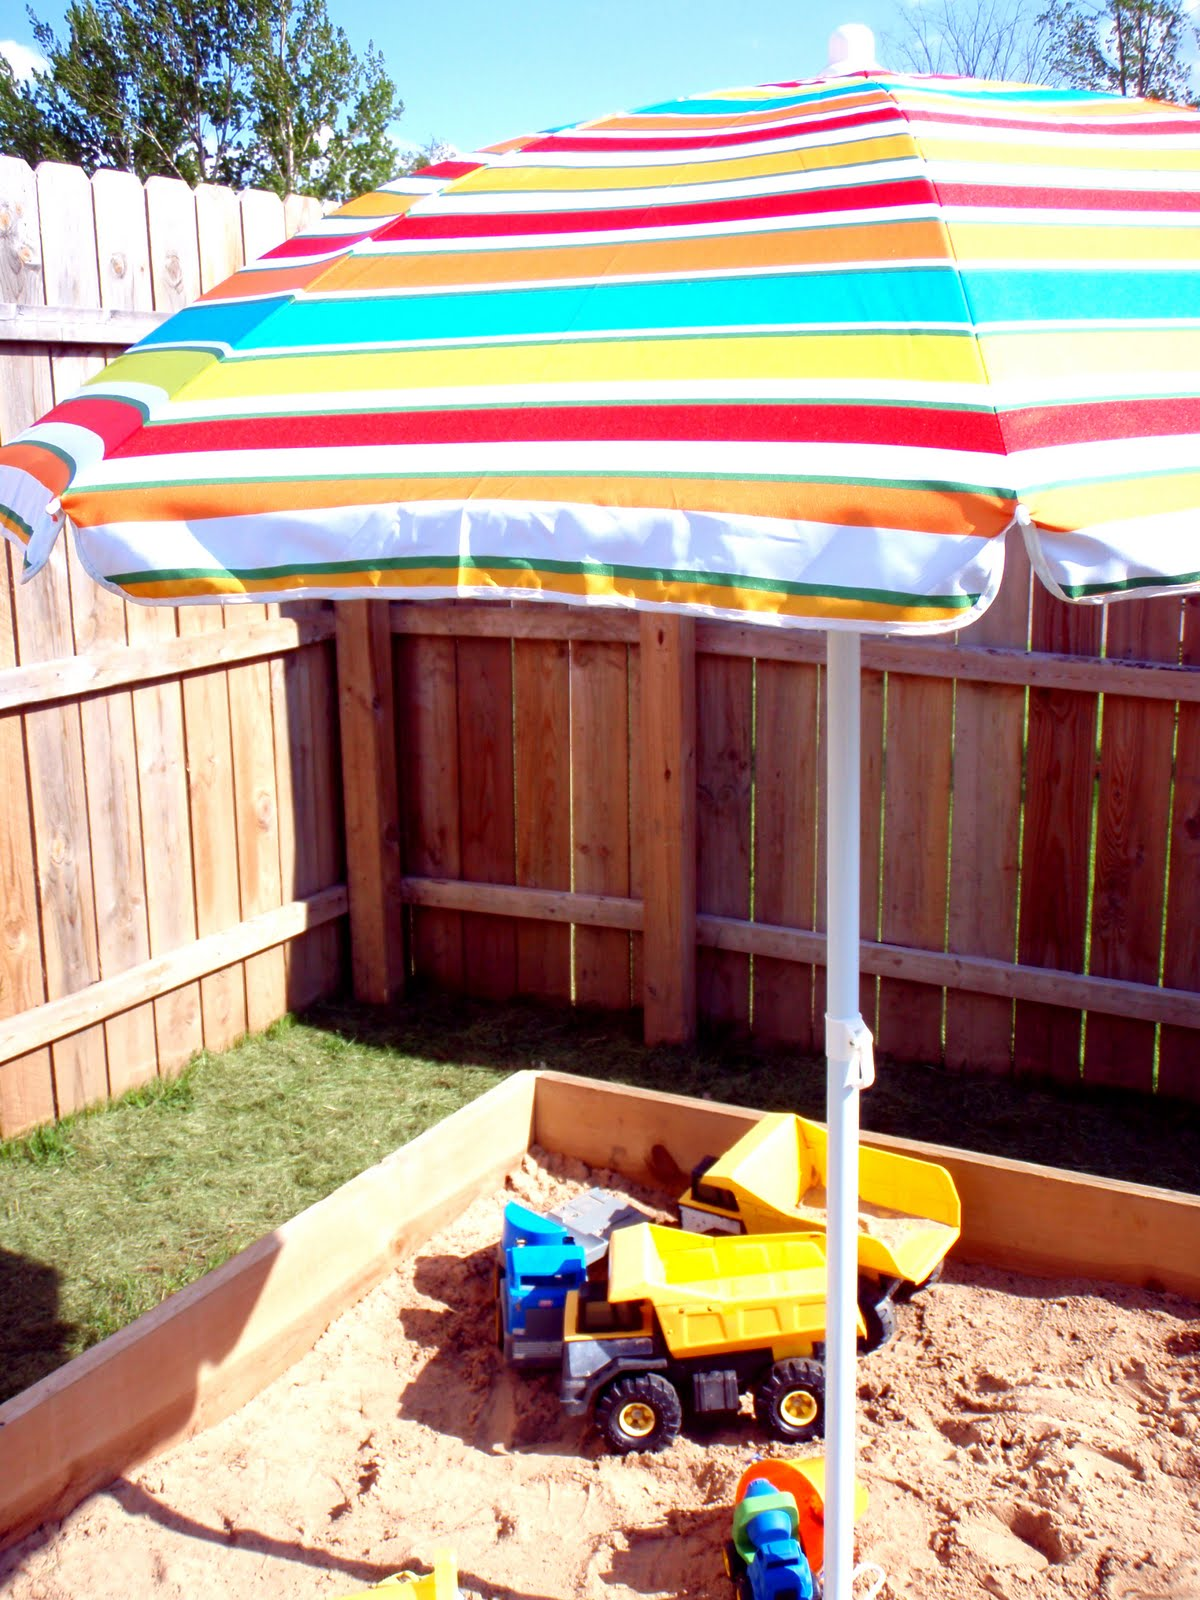 iheart organizing may featured space outdoors sandbox shade